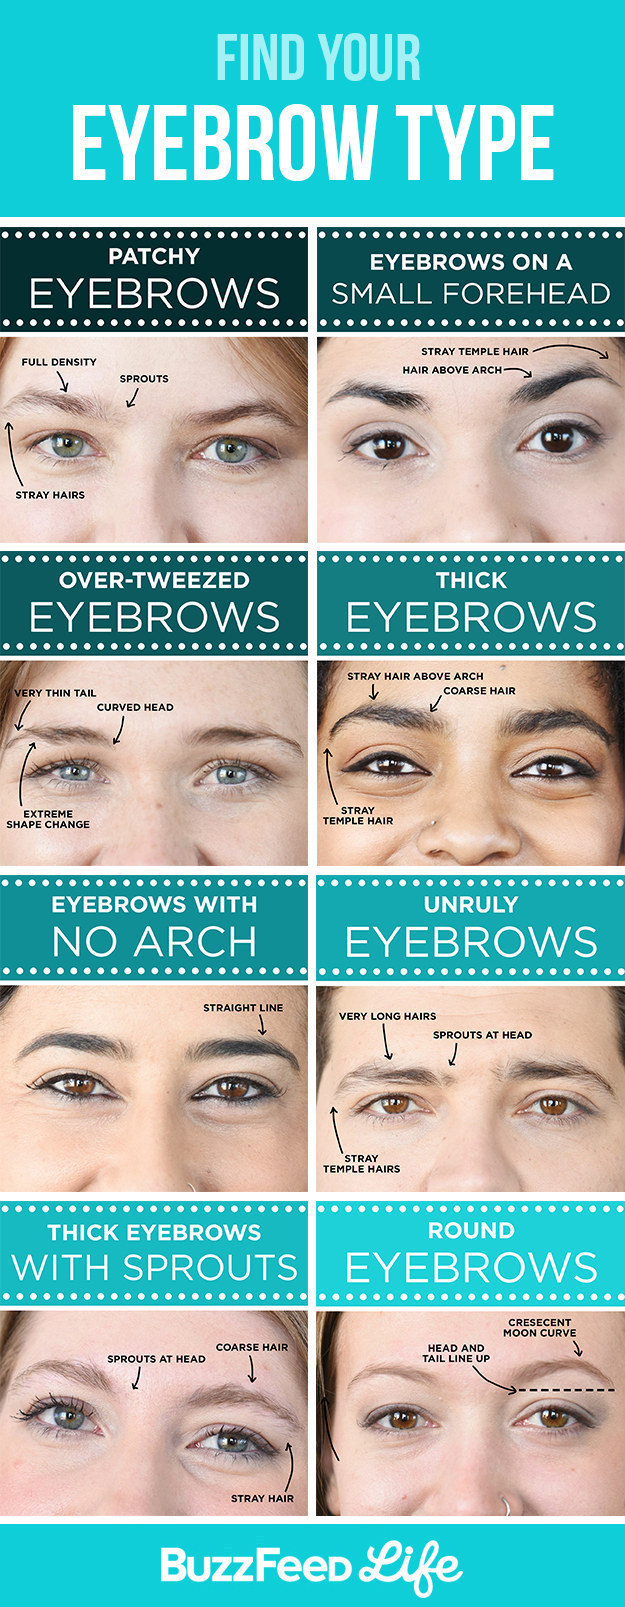 How to eyebrows shape pictures recommendations dress for everyday in 2019